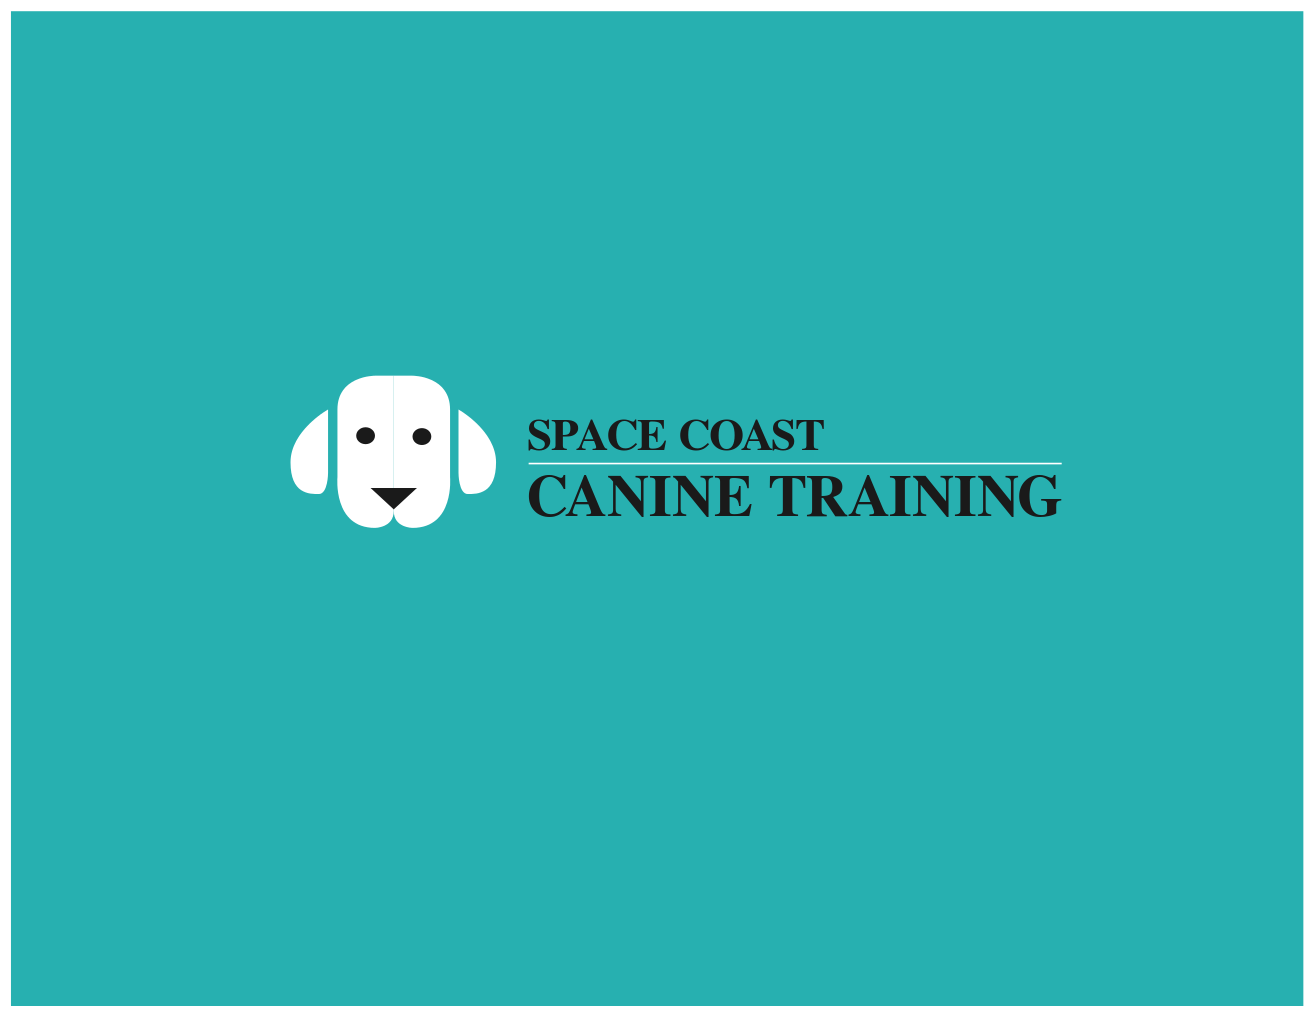 Logo Design by JaroslavProcka - Entry No. 85 in the Logo Design Contest Creative Logo Design for Space Coast Canine Training.